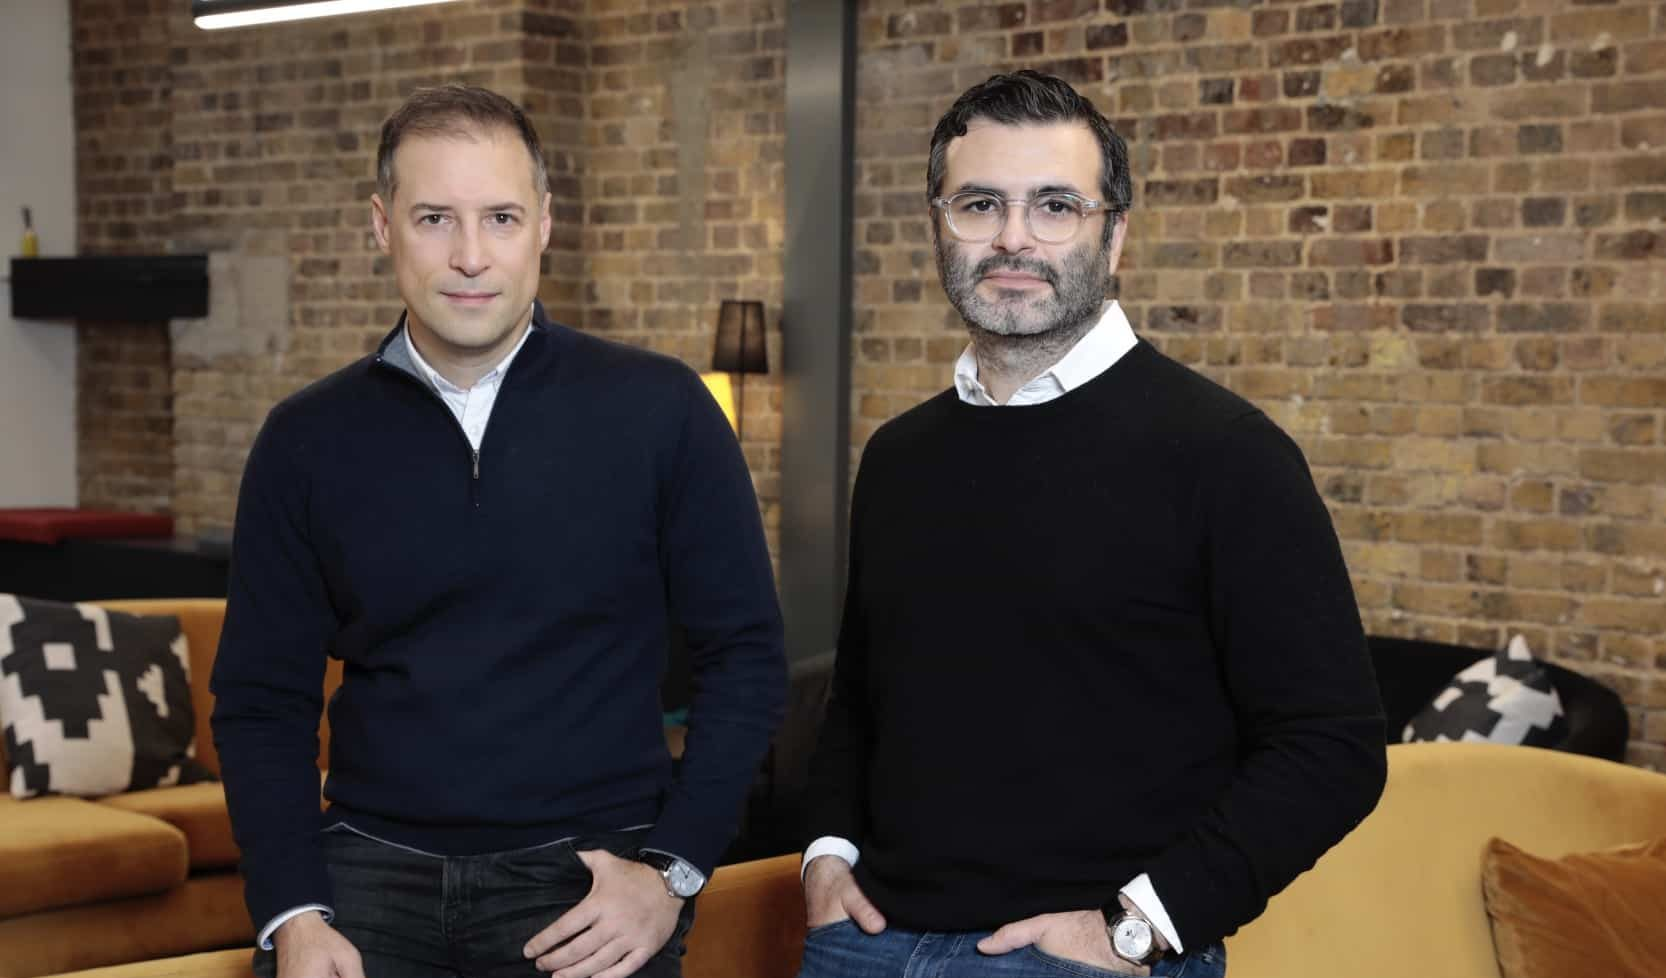 Plentific secures £72.89 million Series C investment led by Highland Europe and Brookfield Technology Partners